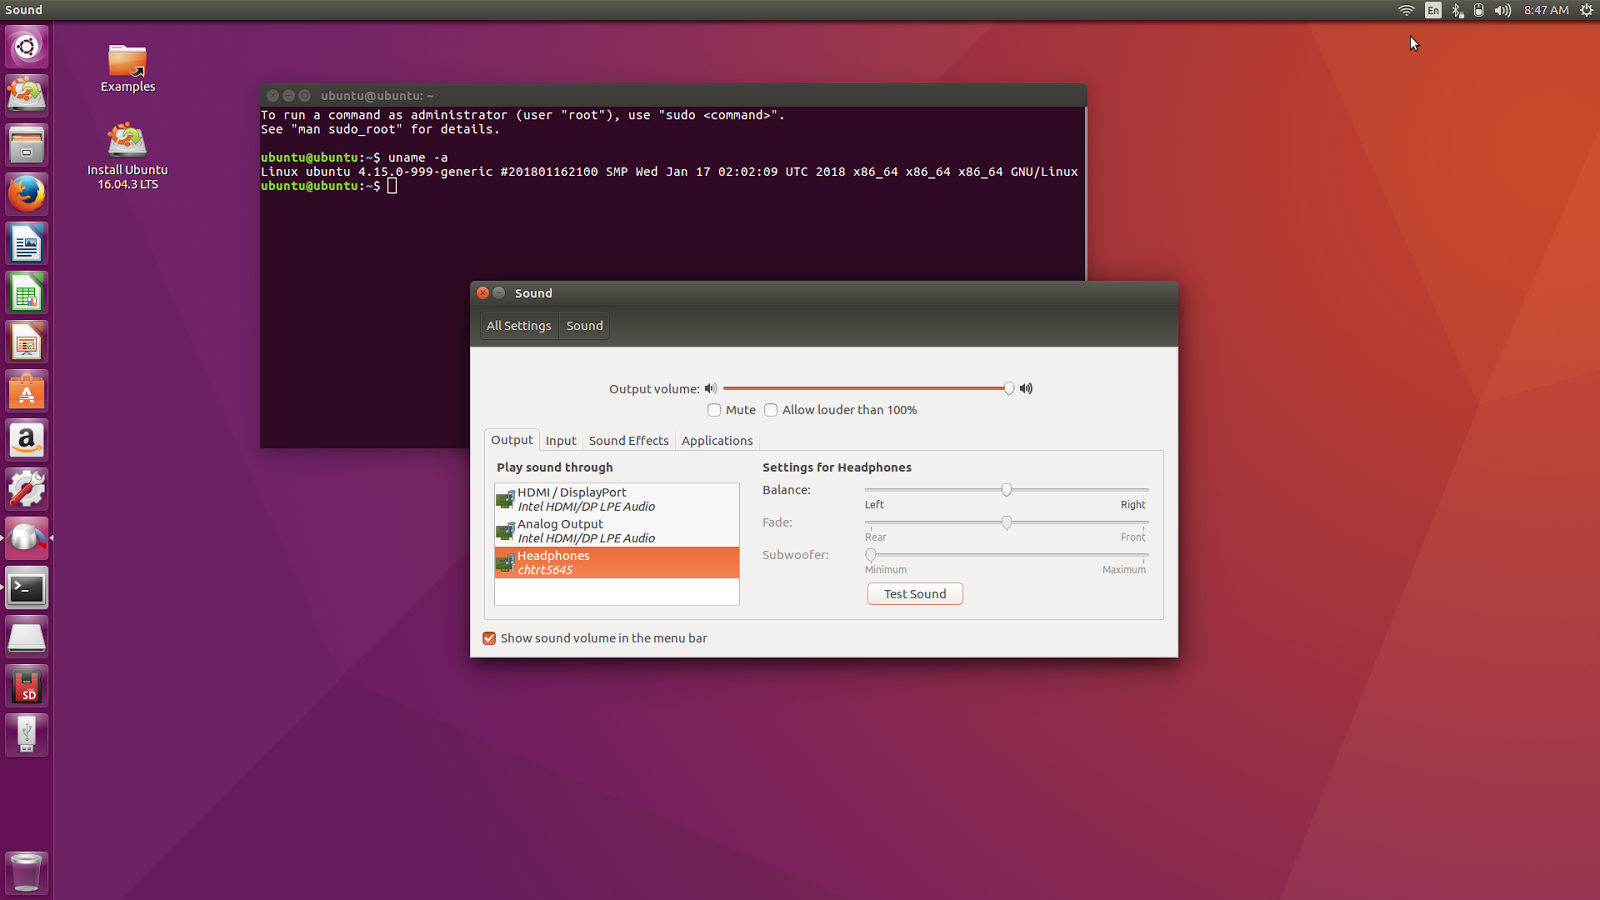 linuxium com au: Linux on MINIX NEO Z83-4 and Z83-4 Pro